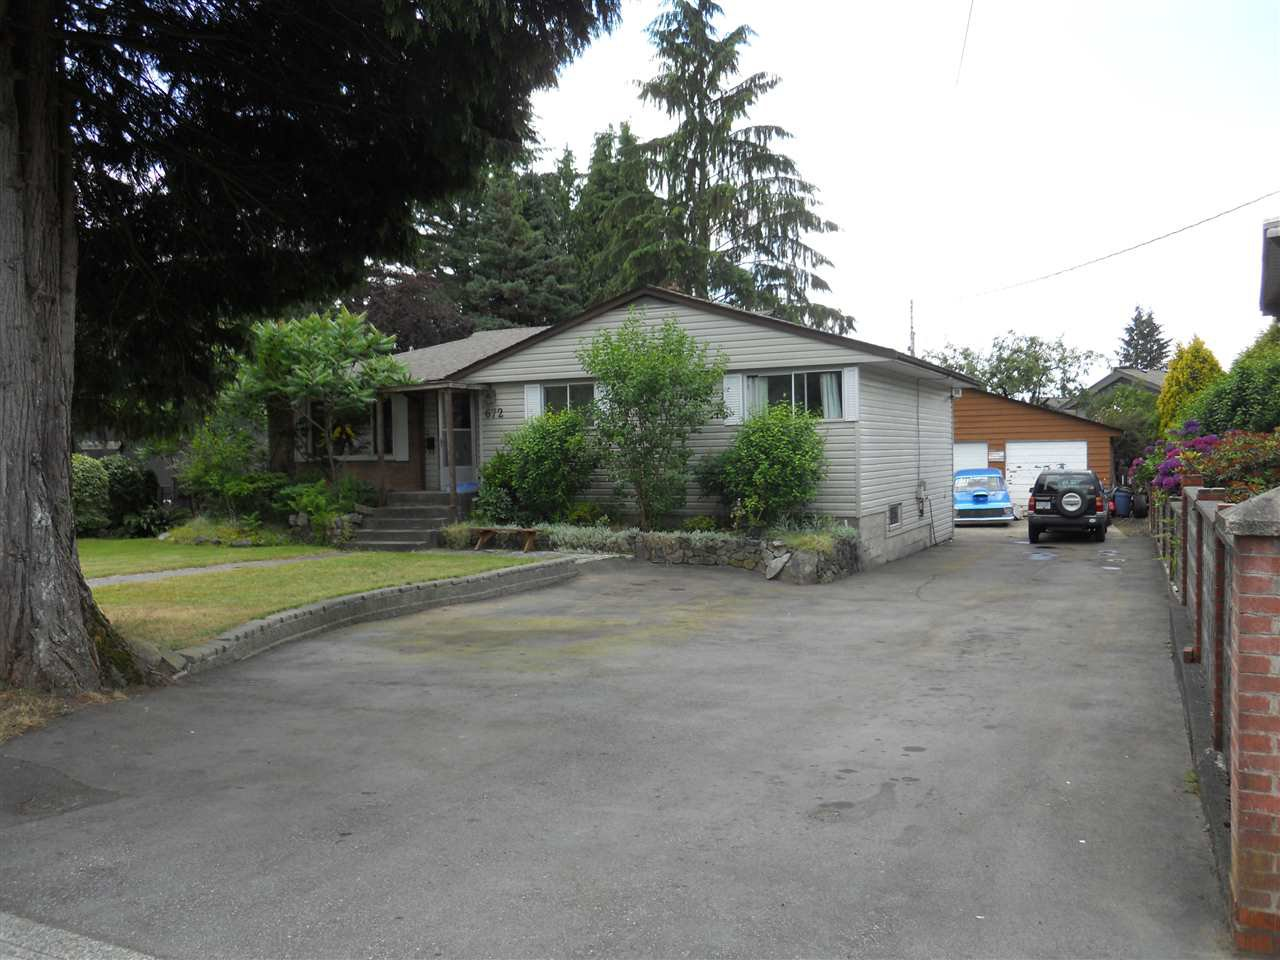 Main Photo: 672 SCHOOLHOUSE STREET in Coquitlam: Central Coquitlam House for sale : MLS®# R2092721